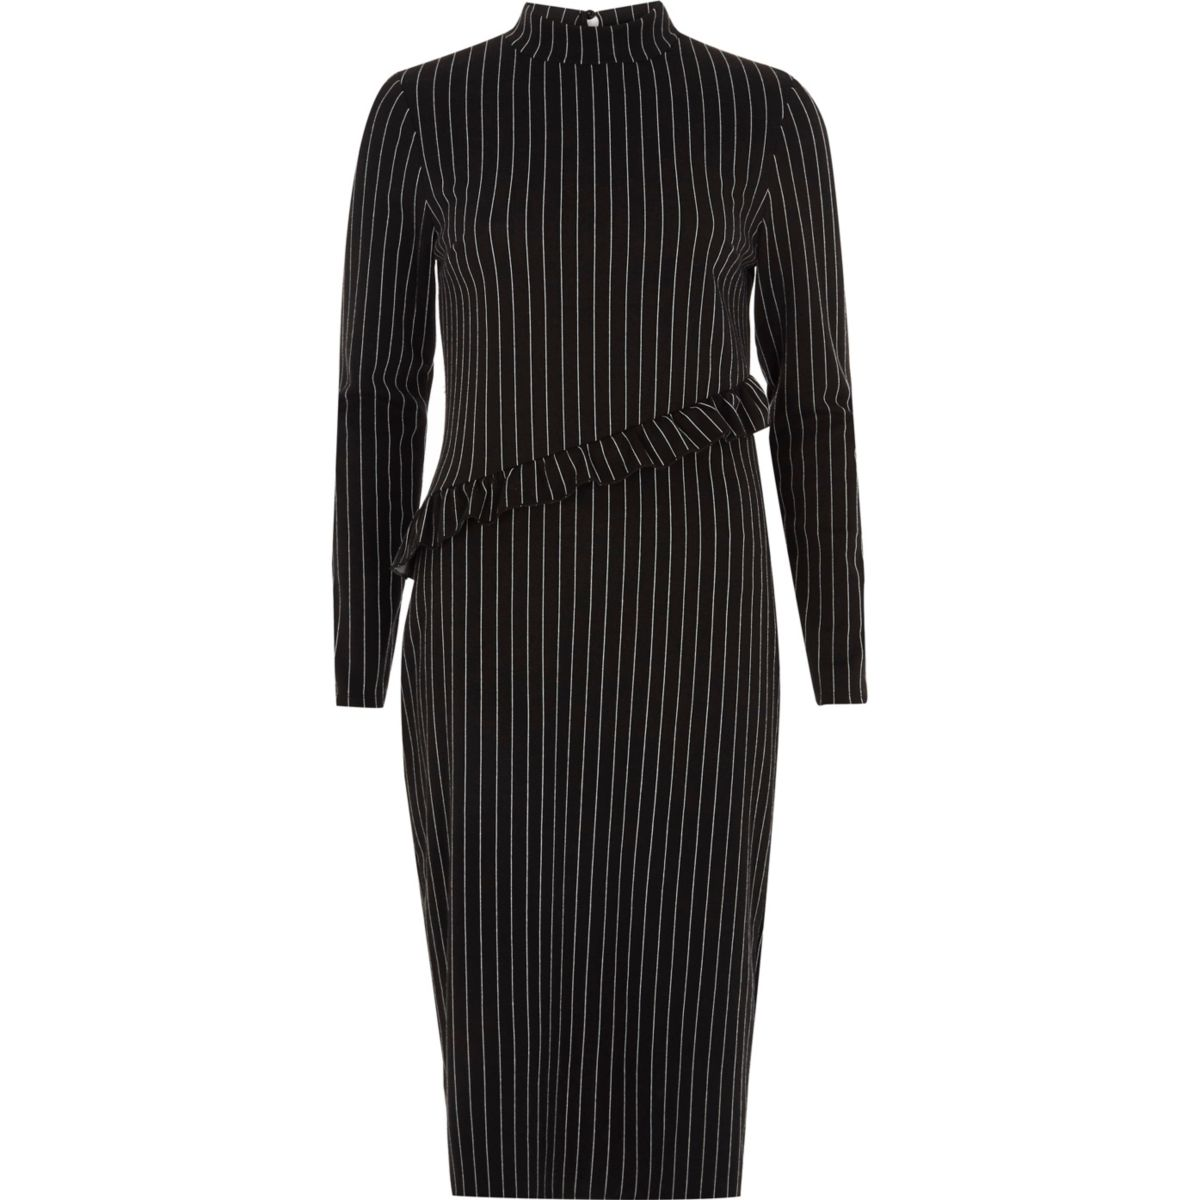 Black pin stripe high neck frill midi dress